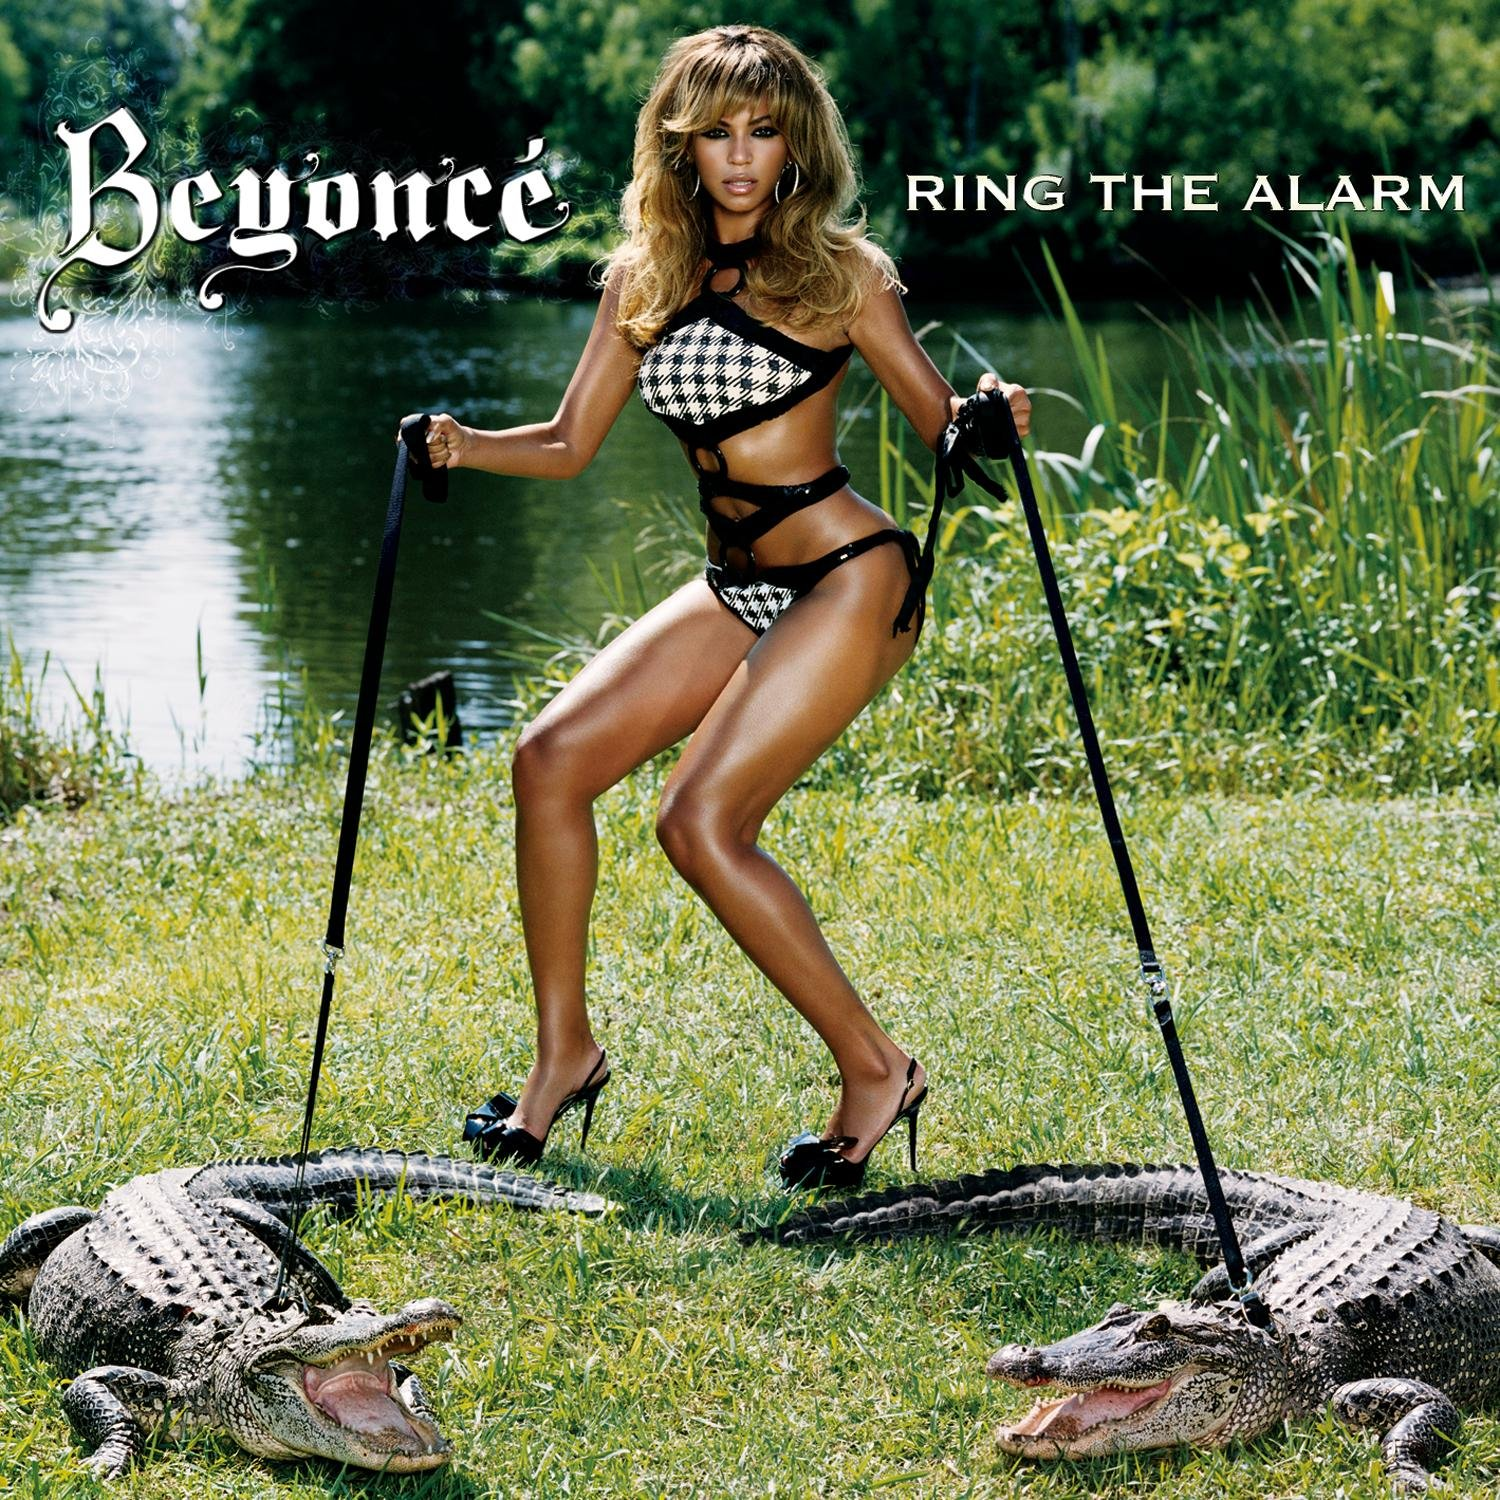 Ring The Alarm : Beyonce: Amazon.fr: Musique